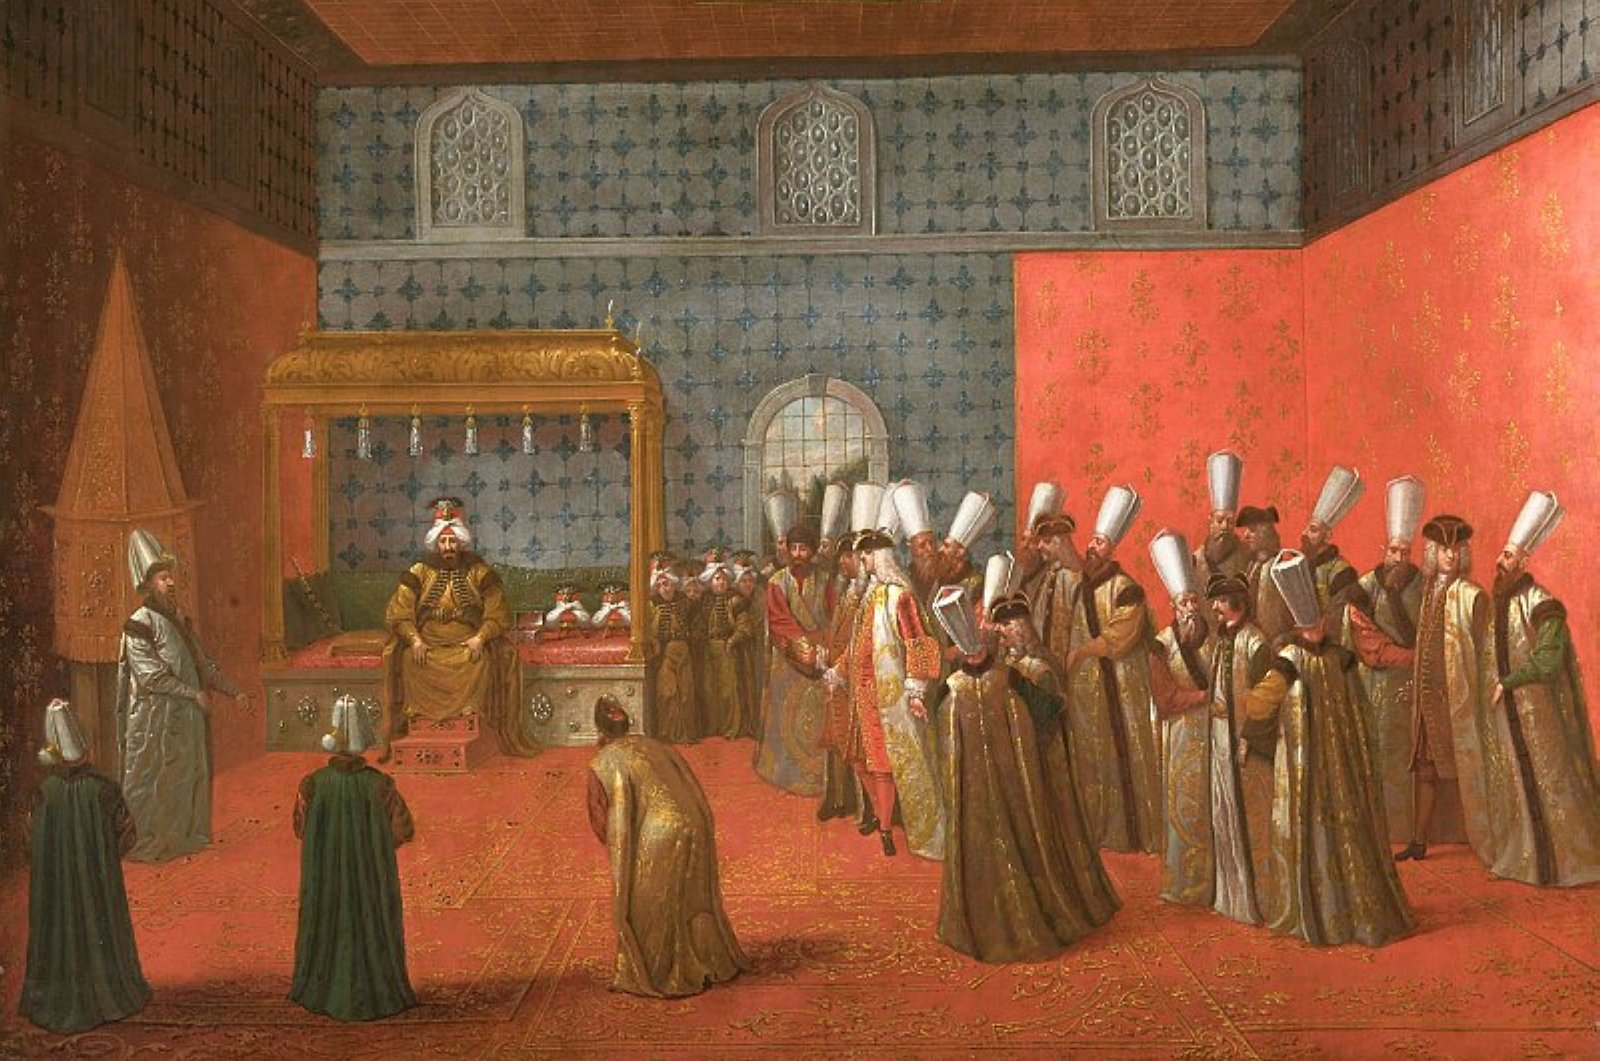 A painting by Flemish French painter Jean Baptiste Vanmour depicting Sultan Ahmed III receiving Dutch ambassador Cornelis Calkoen at the Topkapı Palace in Istanbul in 1727.